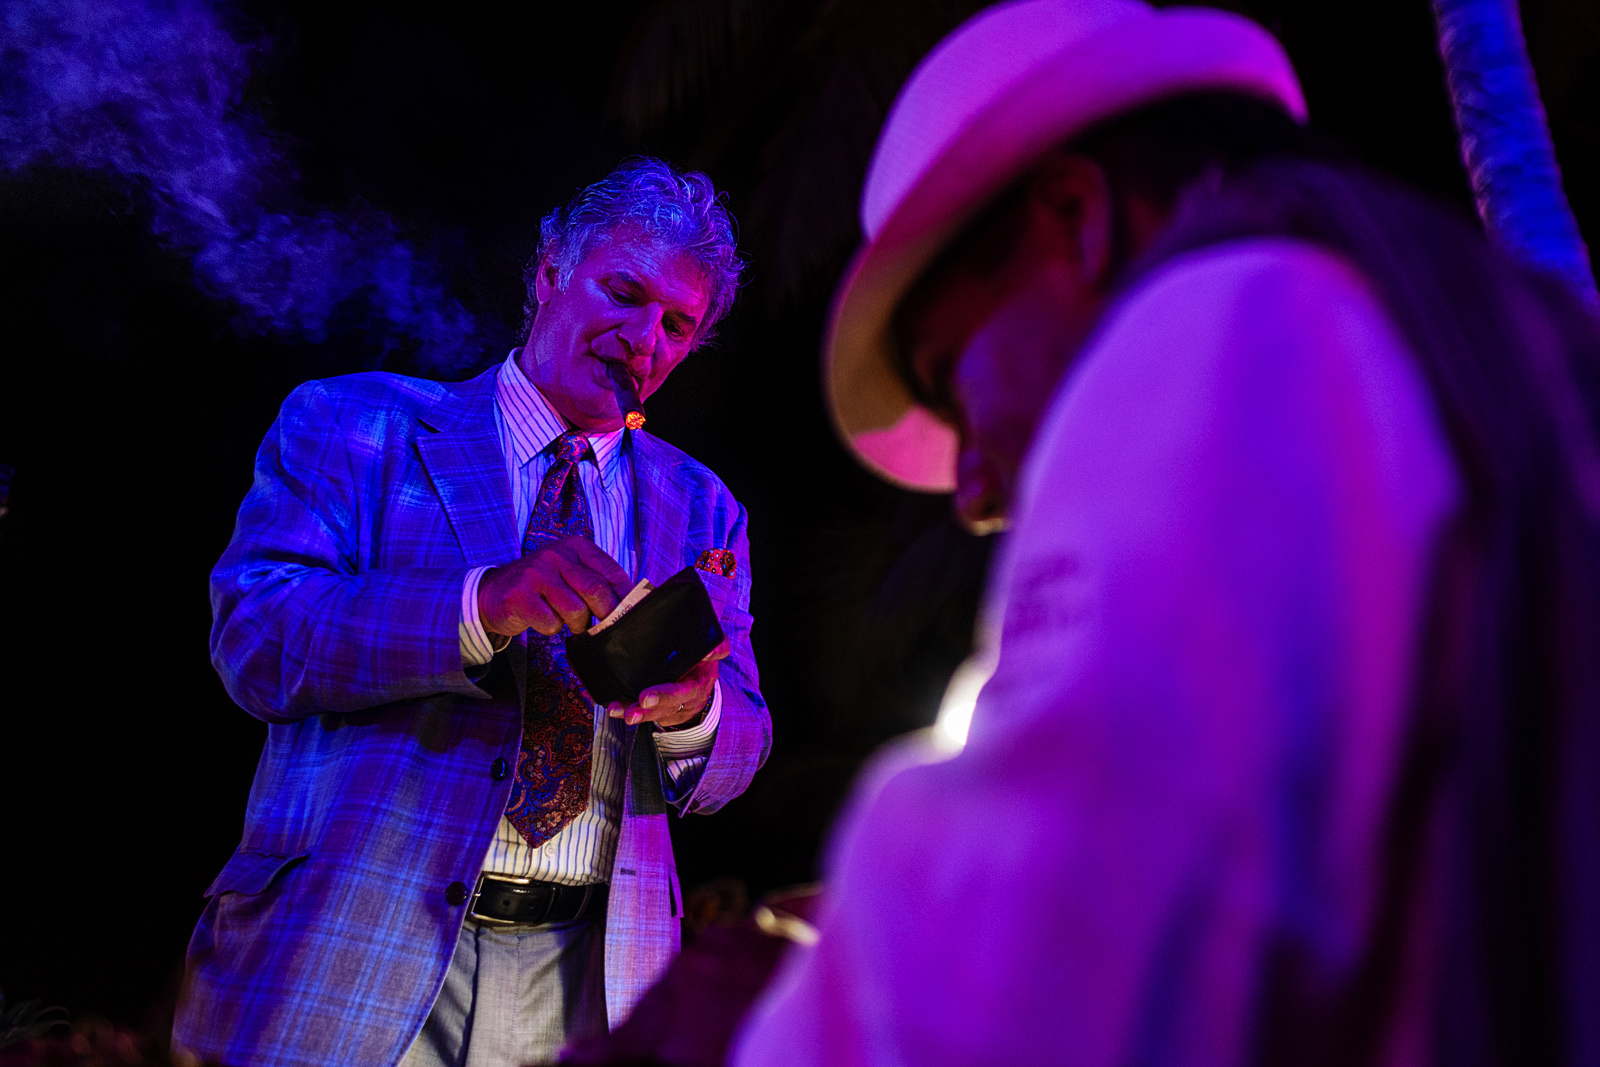 Wedding guest with a cigar in his mouth giving a tip to the cigar maker